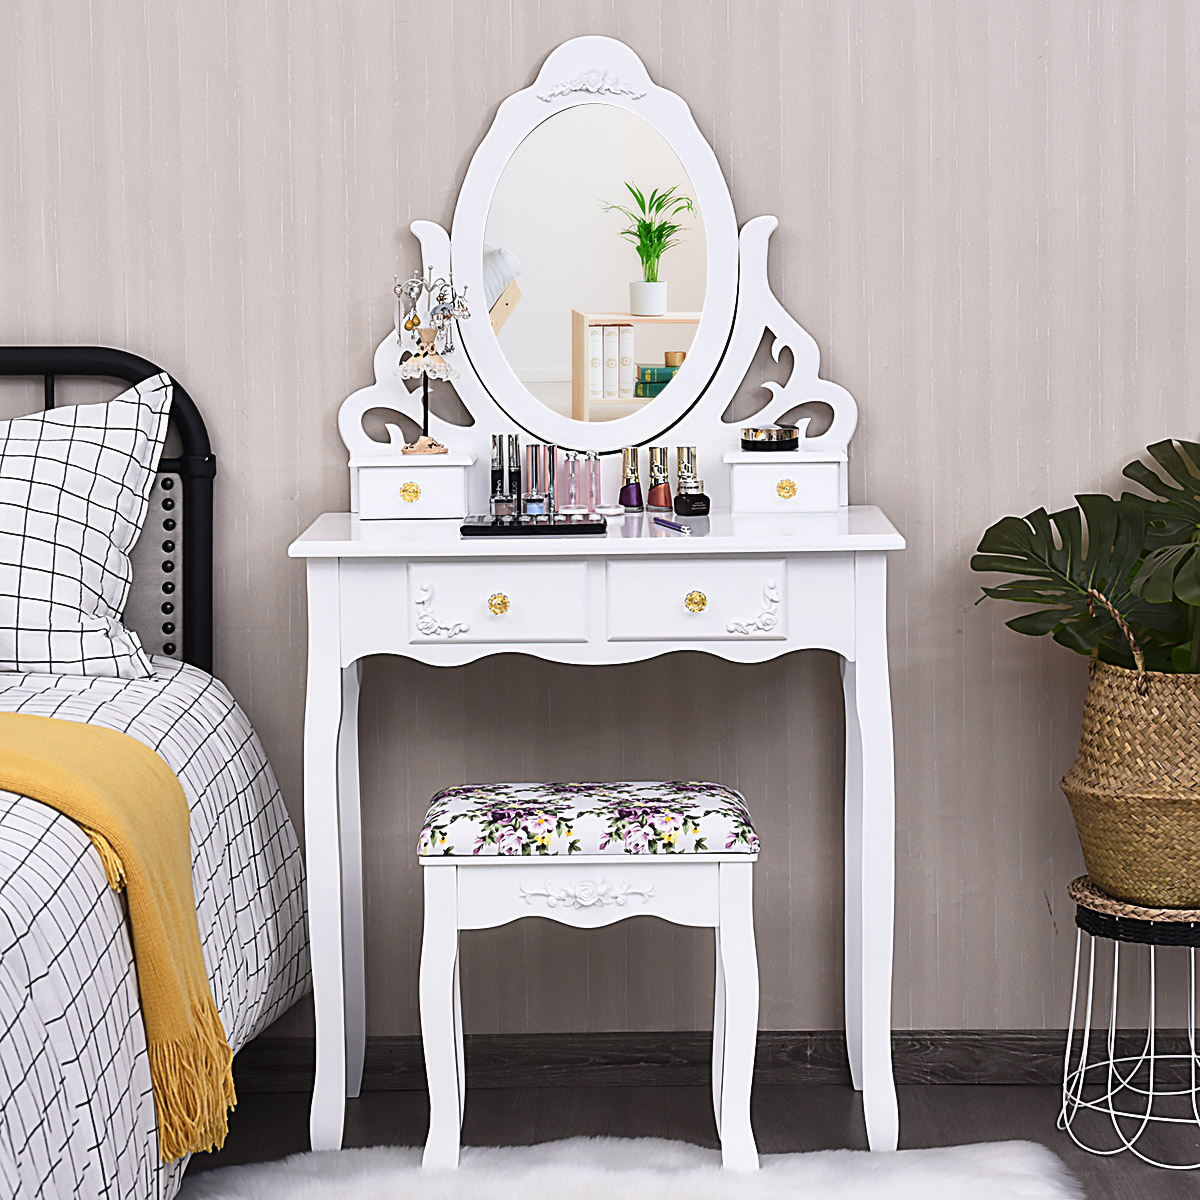 Costway Makeup Table Stool Wood Vanity Dressing Desk Mirror 4 Drawers - Walmart.com - Walmart.com